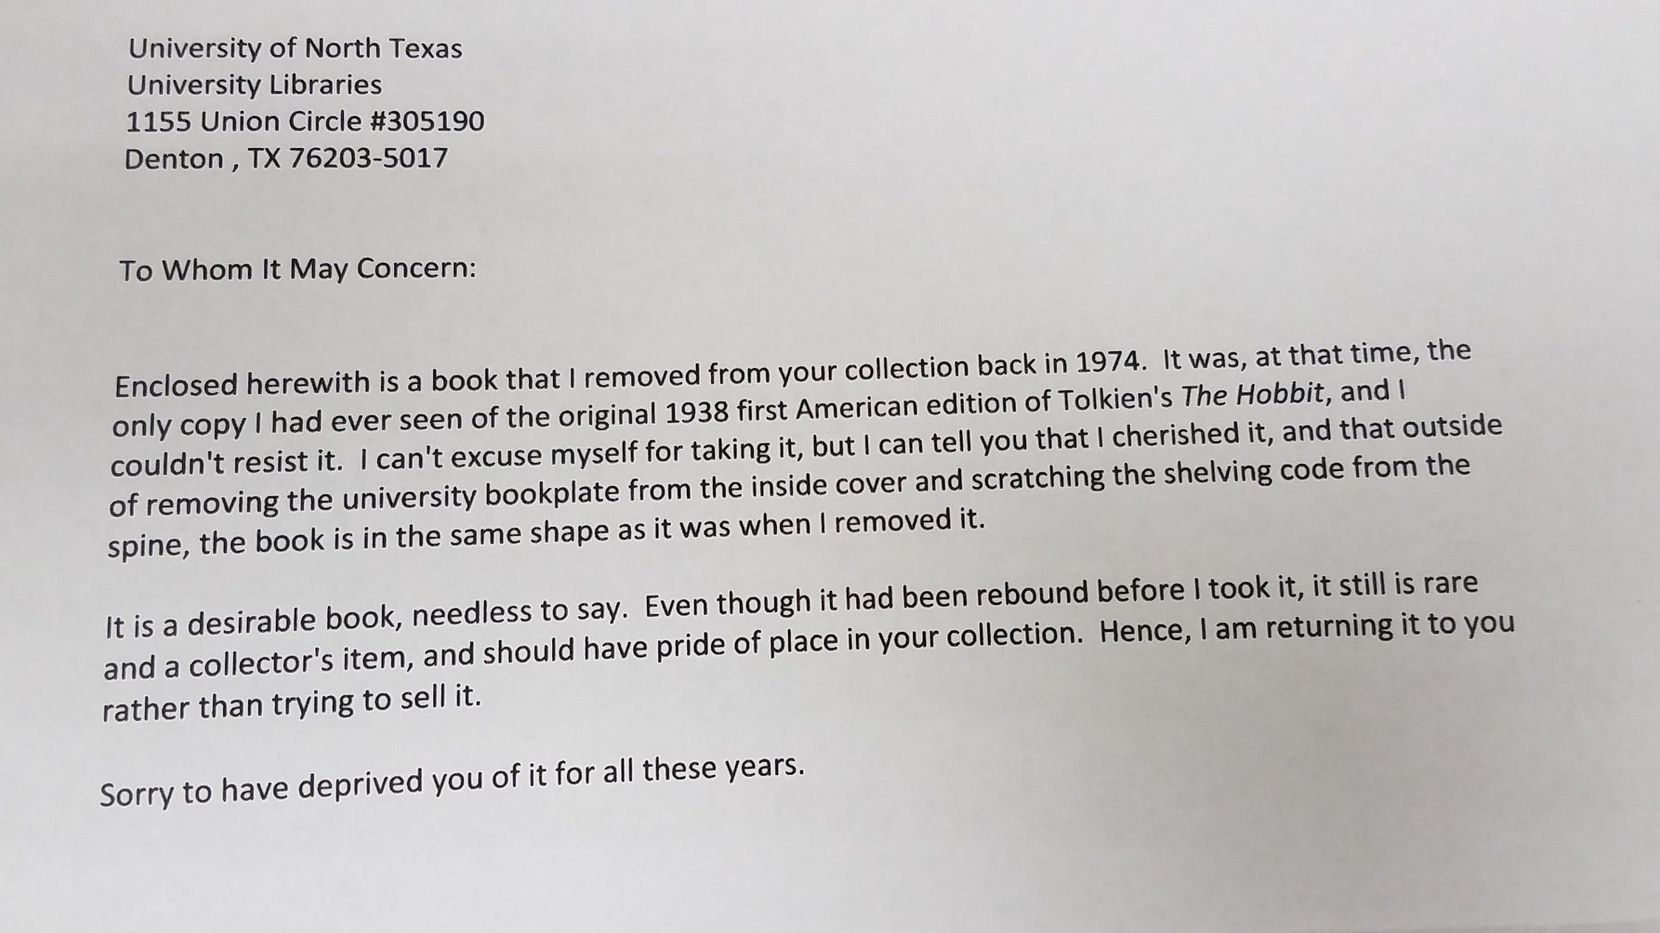 A well-written anonymous letter arrived recently at the University of North Texas, detailing someone's decision to return a book taken from the campus library in 1974.